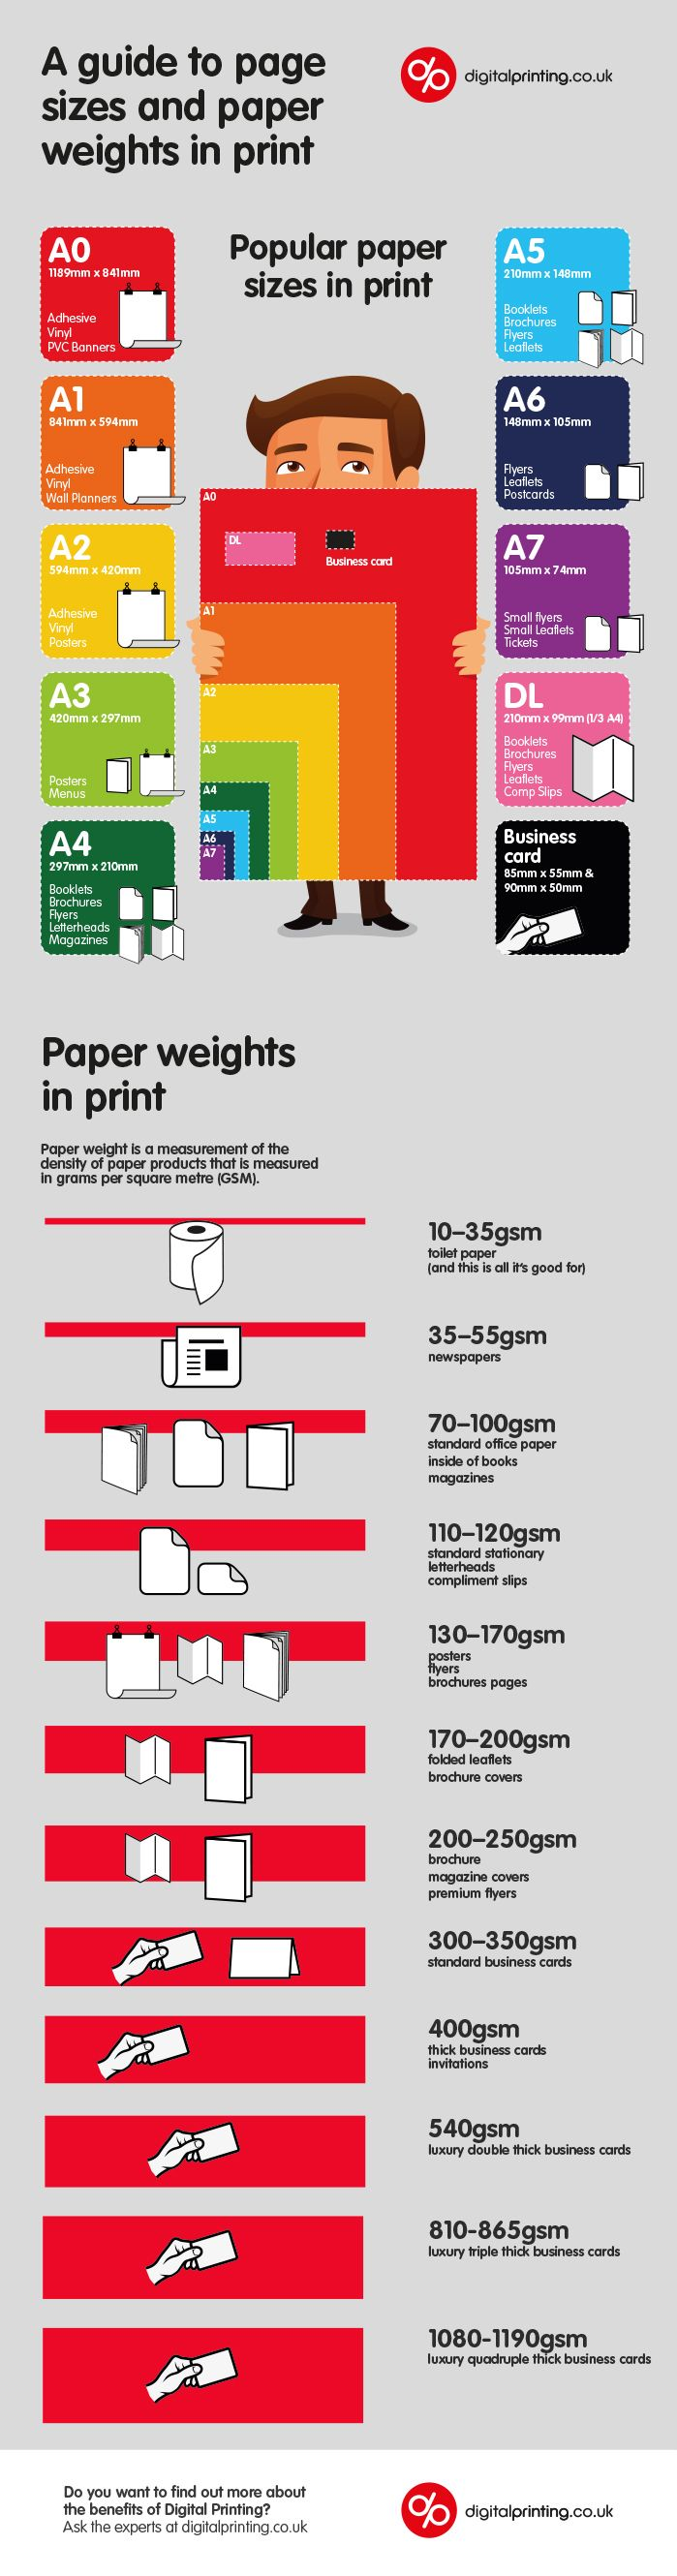 If you are new to the world of print and want to develop an understanding of the type of paper you need to use for your printed marketing needs, print out this guide and look forward to the new found knowledge you will take from it.  Use this to help you make better decisions in deciding the best options for your print needs going forward.  For more details on getting the most from your print requirements, please get in touch with our expert team today at Digital Printing.